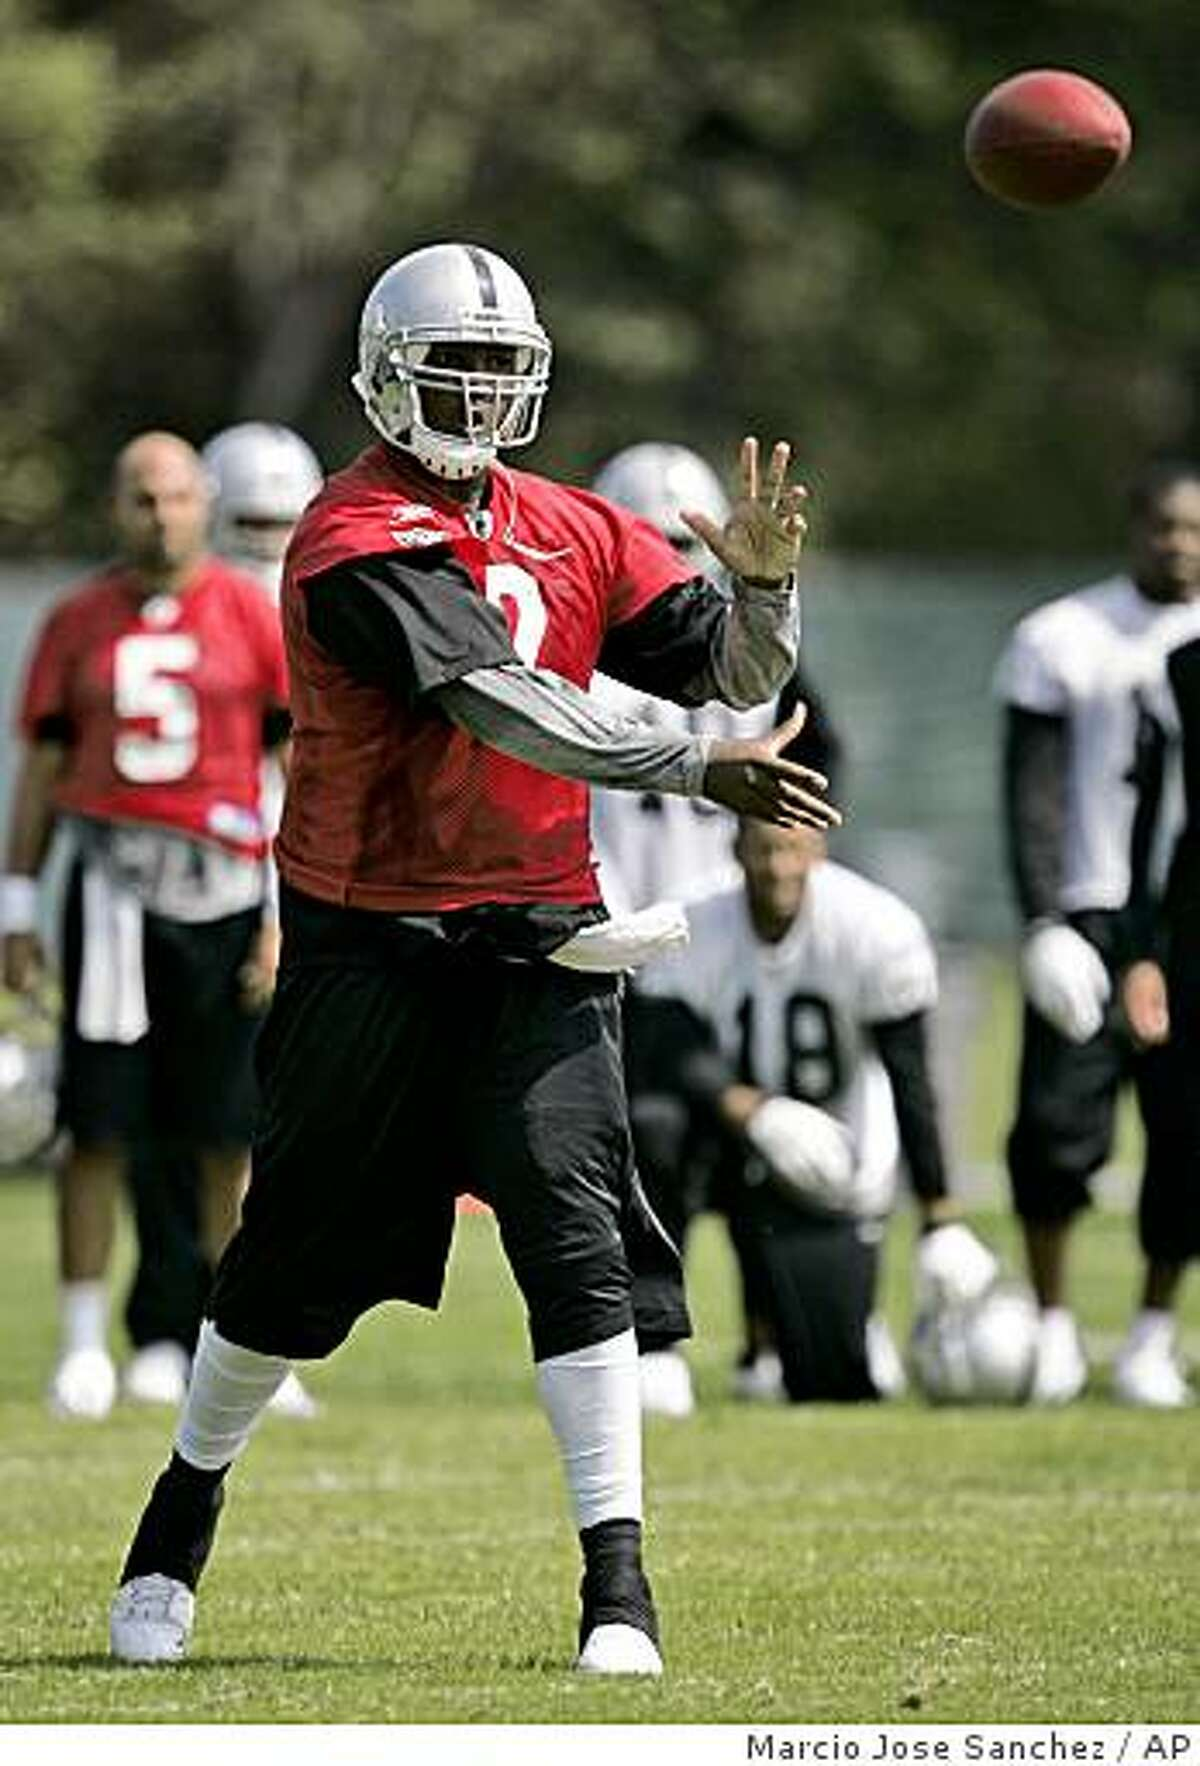 Oakland Raiders quarterback JaMarcus Russell throws a pass during training camp in Alameda, Calif., Wednesday, June 3, 2009.